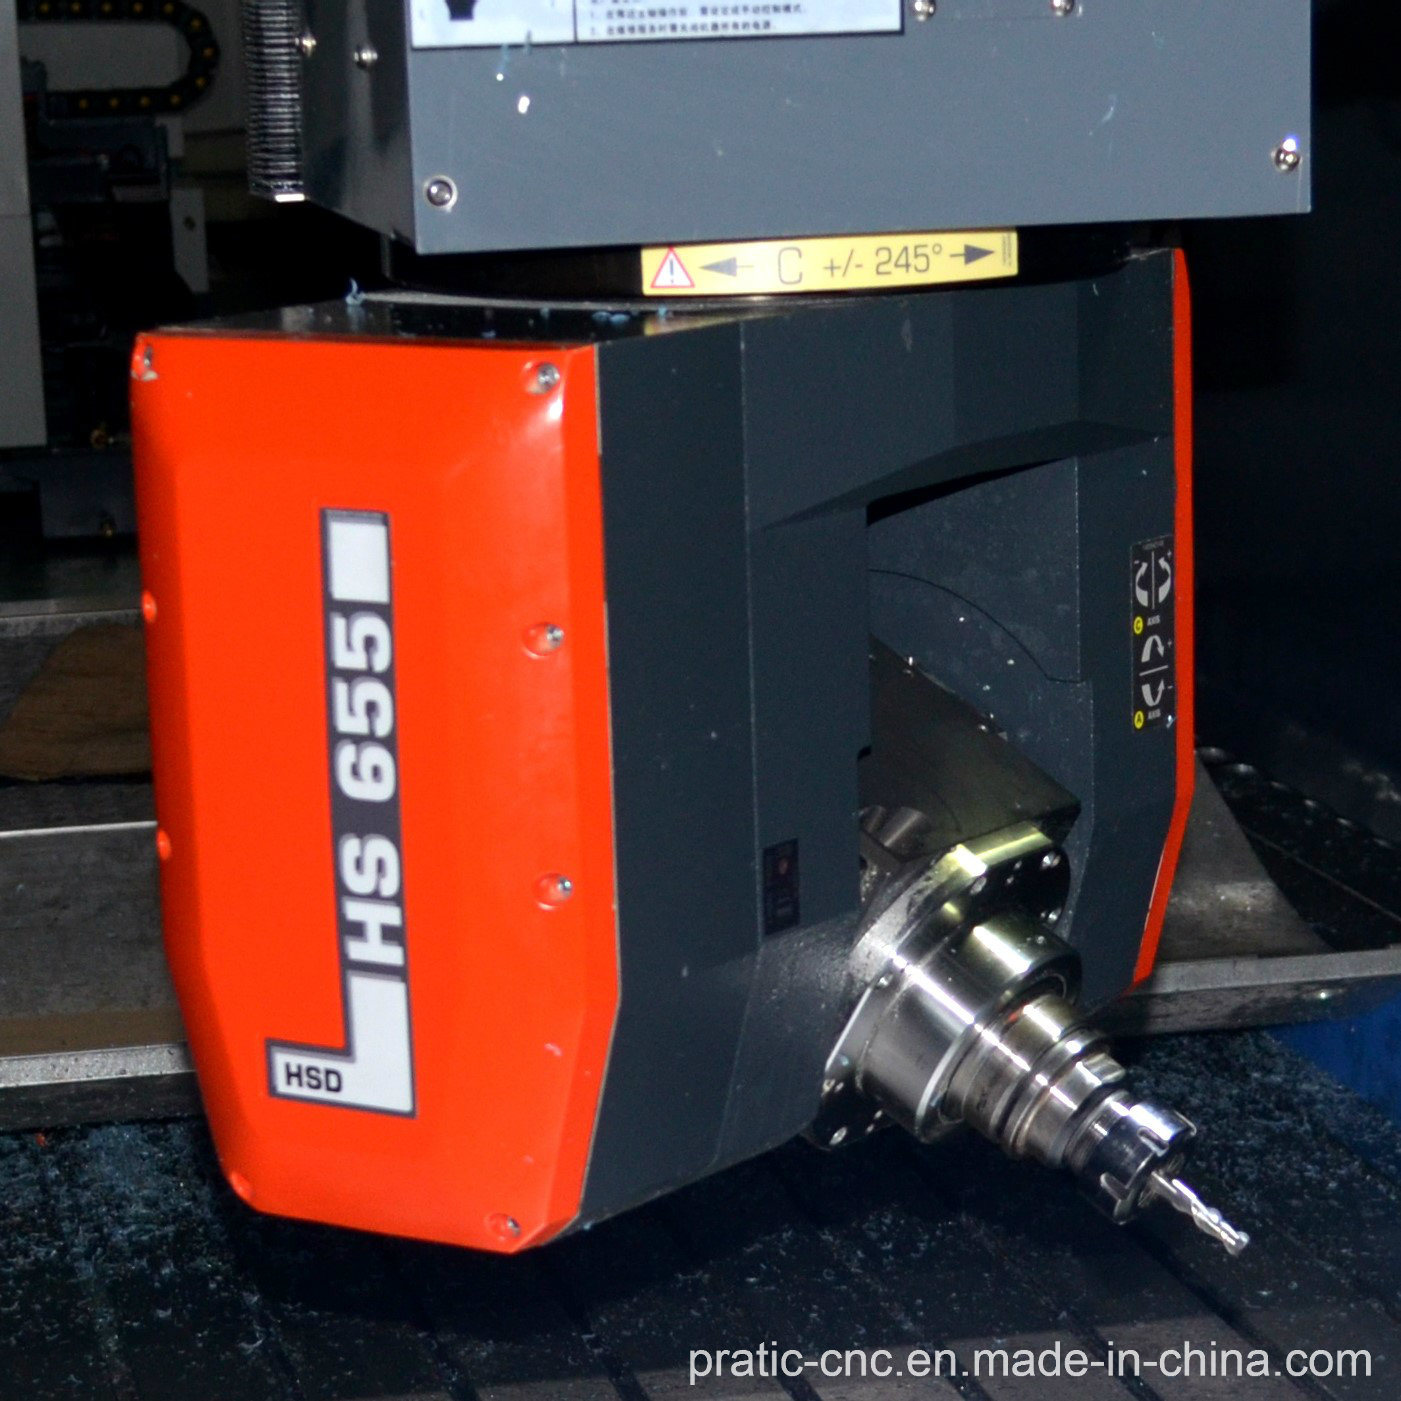 CNC Automative Welding Machinery Pratic-Phb-CNC4500 pictures & photos